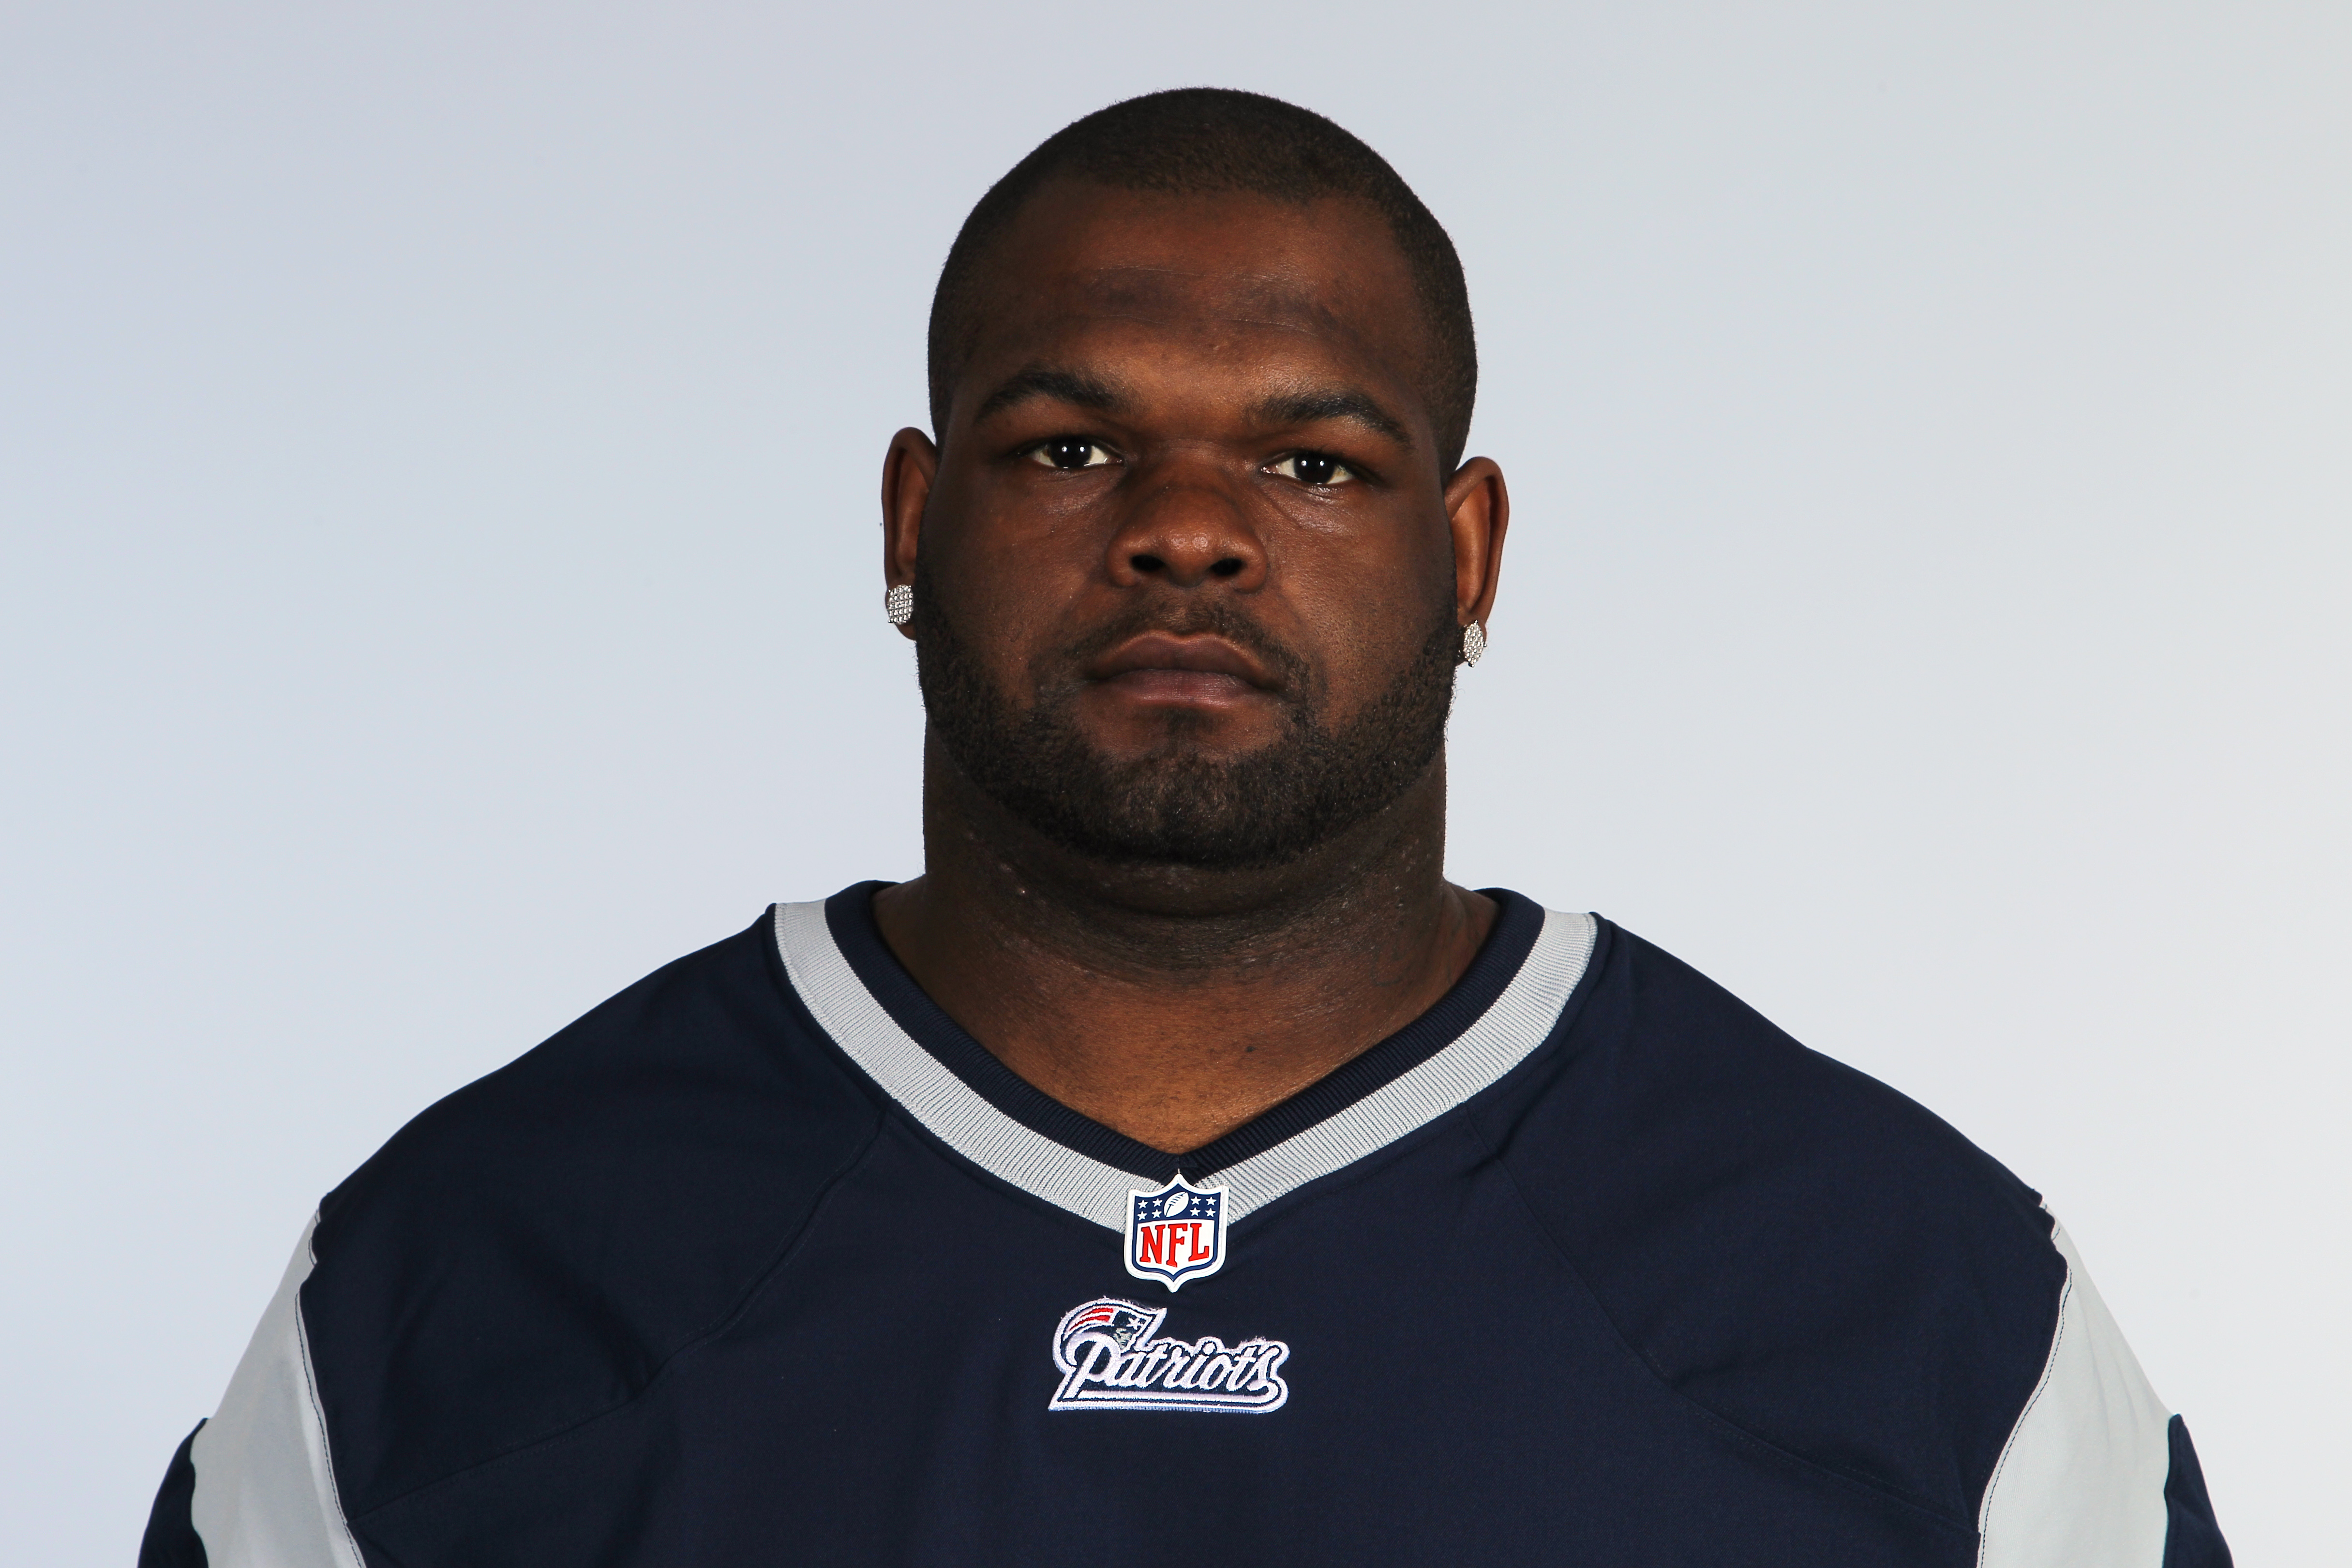 This is a 2012 photo of Ron Brace of the New England Patriots NFL football team. This image reflects the New England Patriots active roster as of Sunday, June 10, 2012 when this image was taken. (AP Photo)